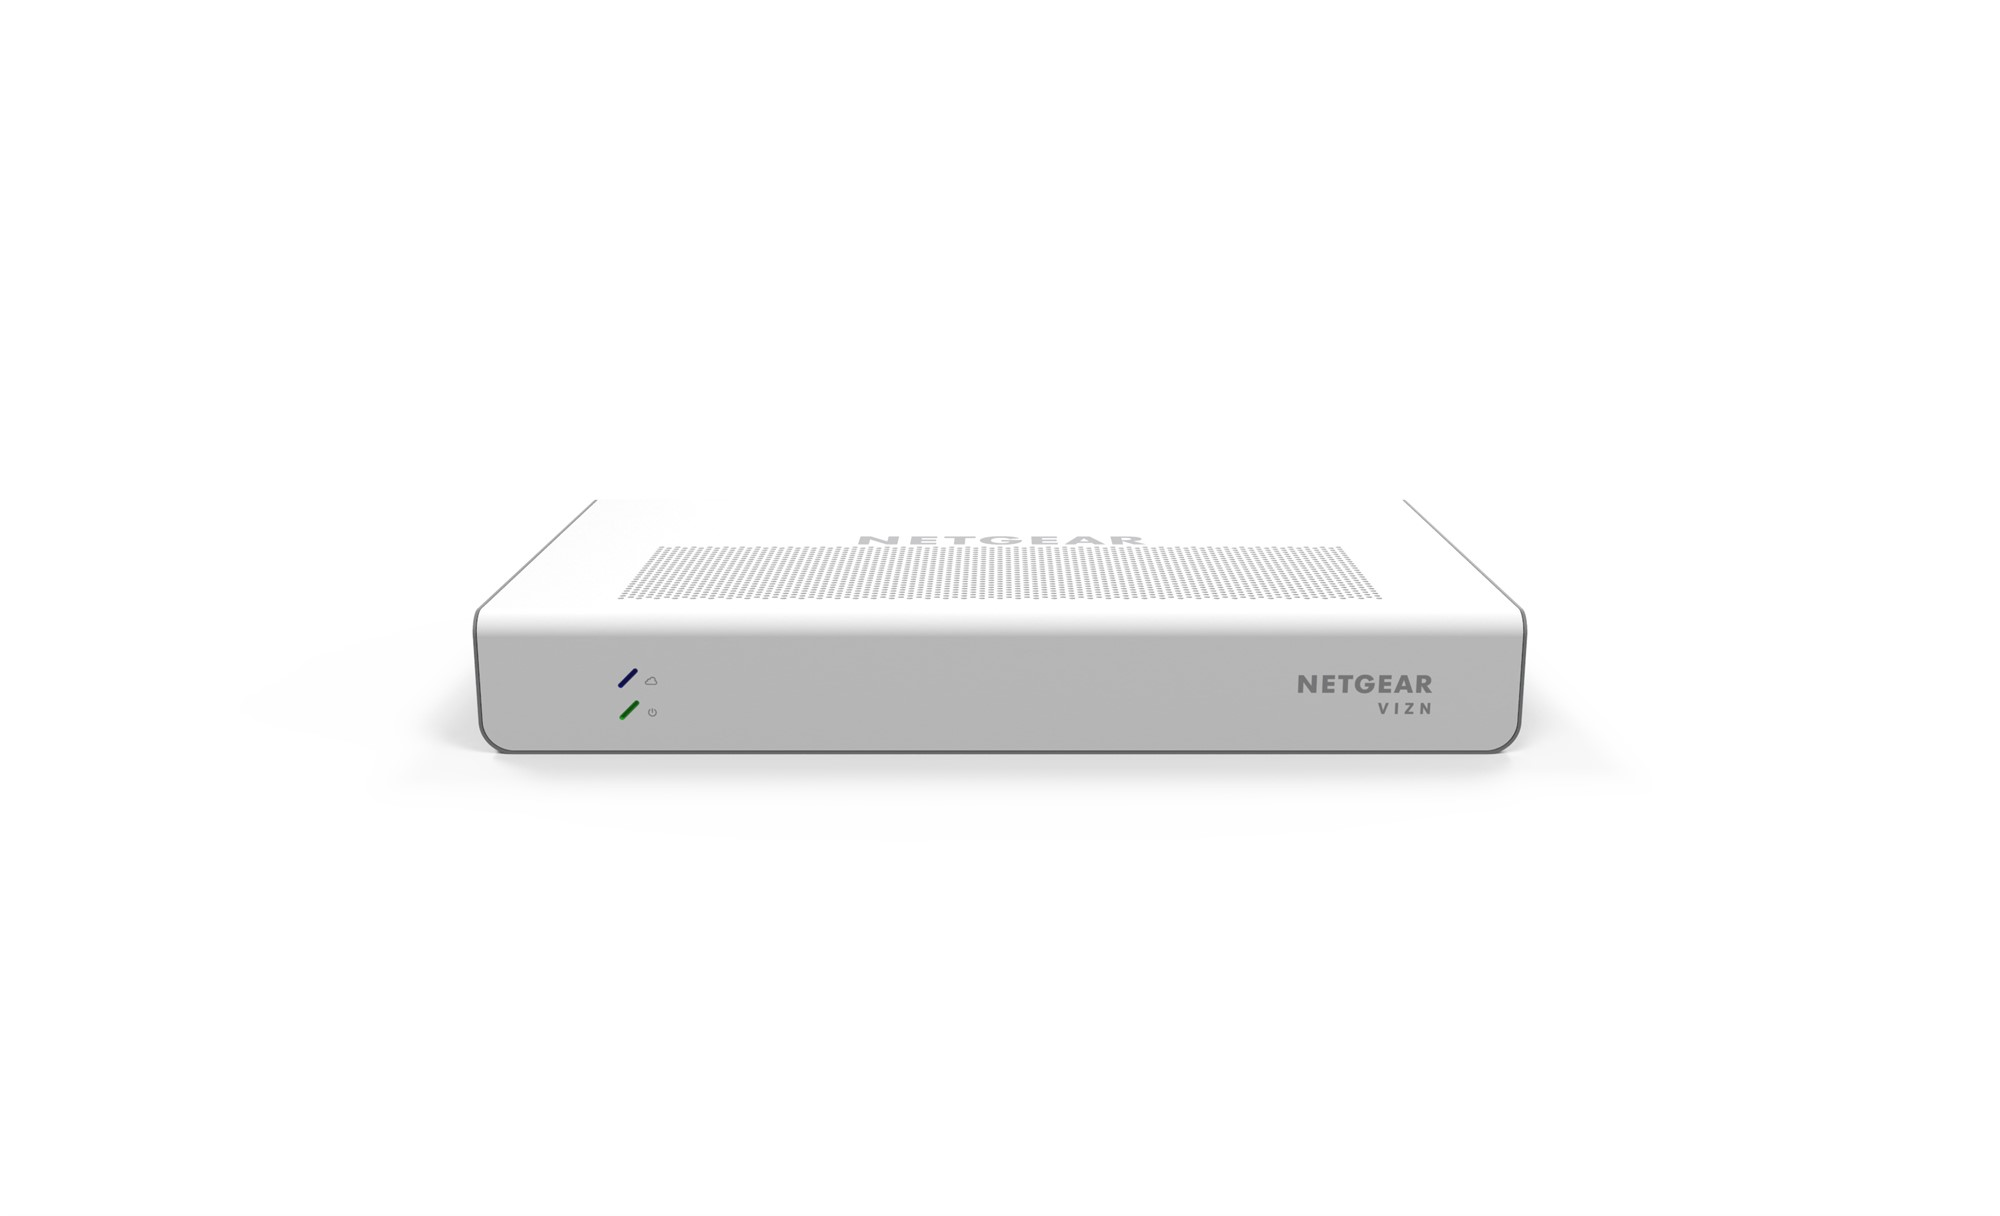 NETGEAR GC510P MANAGED GIGABIT ETHERNET POWER OVER (POE) GREY